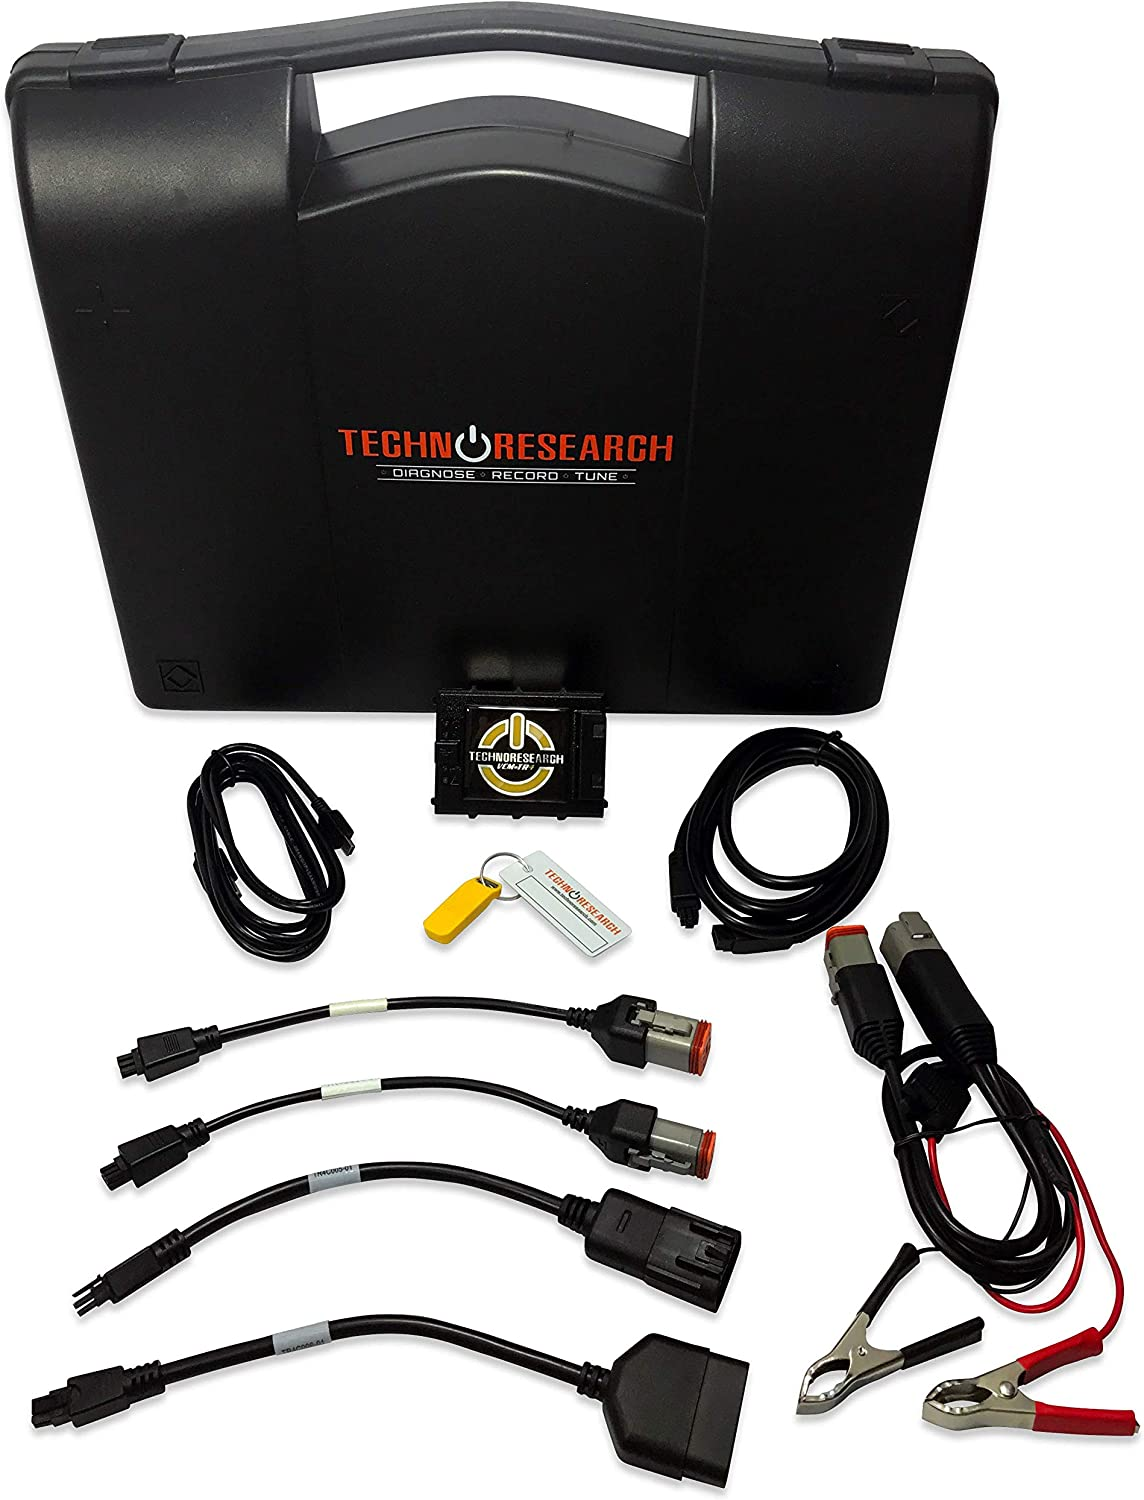 TechnoResearch Centurion Super Pro Plus - Motorcycle Diagnostics for Harley, Victory & Indian